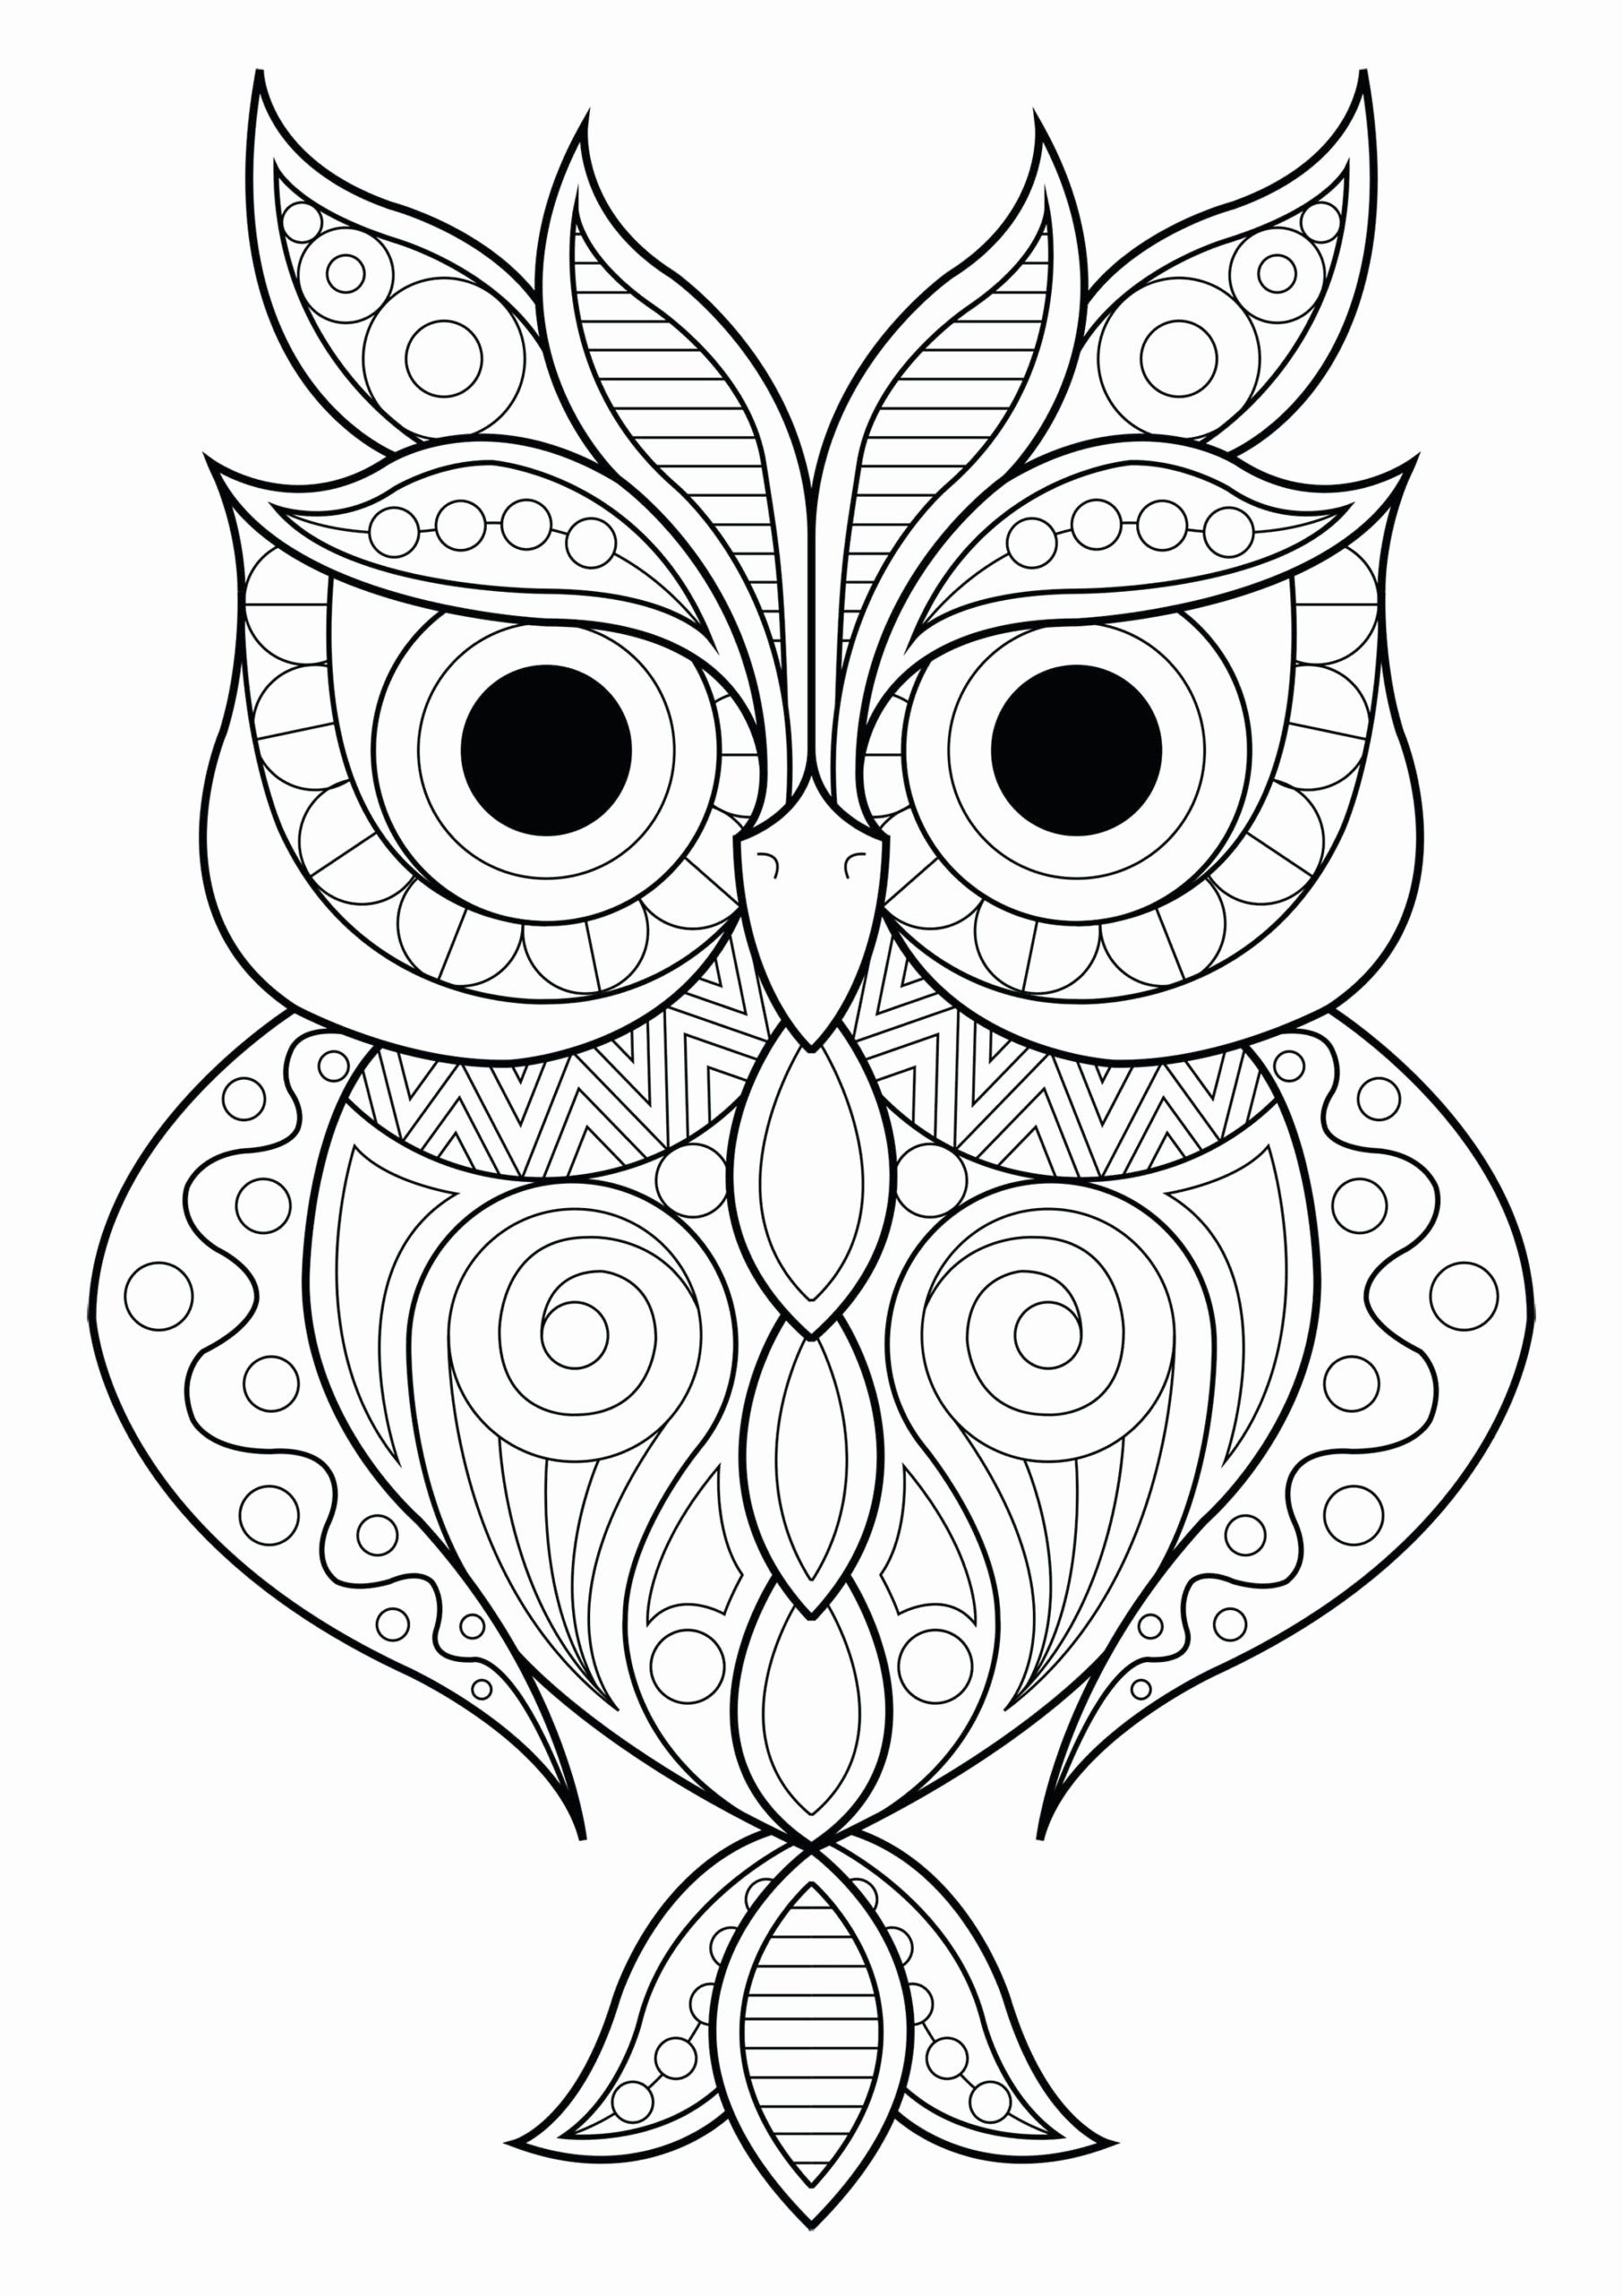 Coloring Contests For Adults Lovely Coloring Pages Owl Simple Patterns With Various Different In 2020 Owl Coloring Pages Animal Coloring Pages Owls Drawing